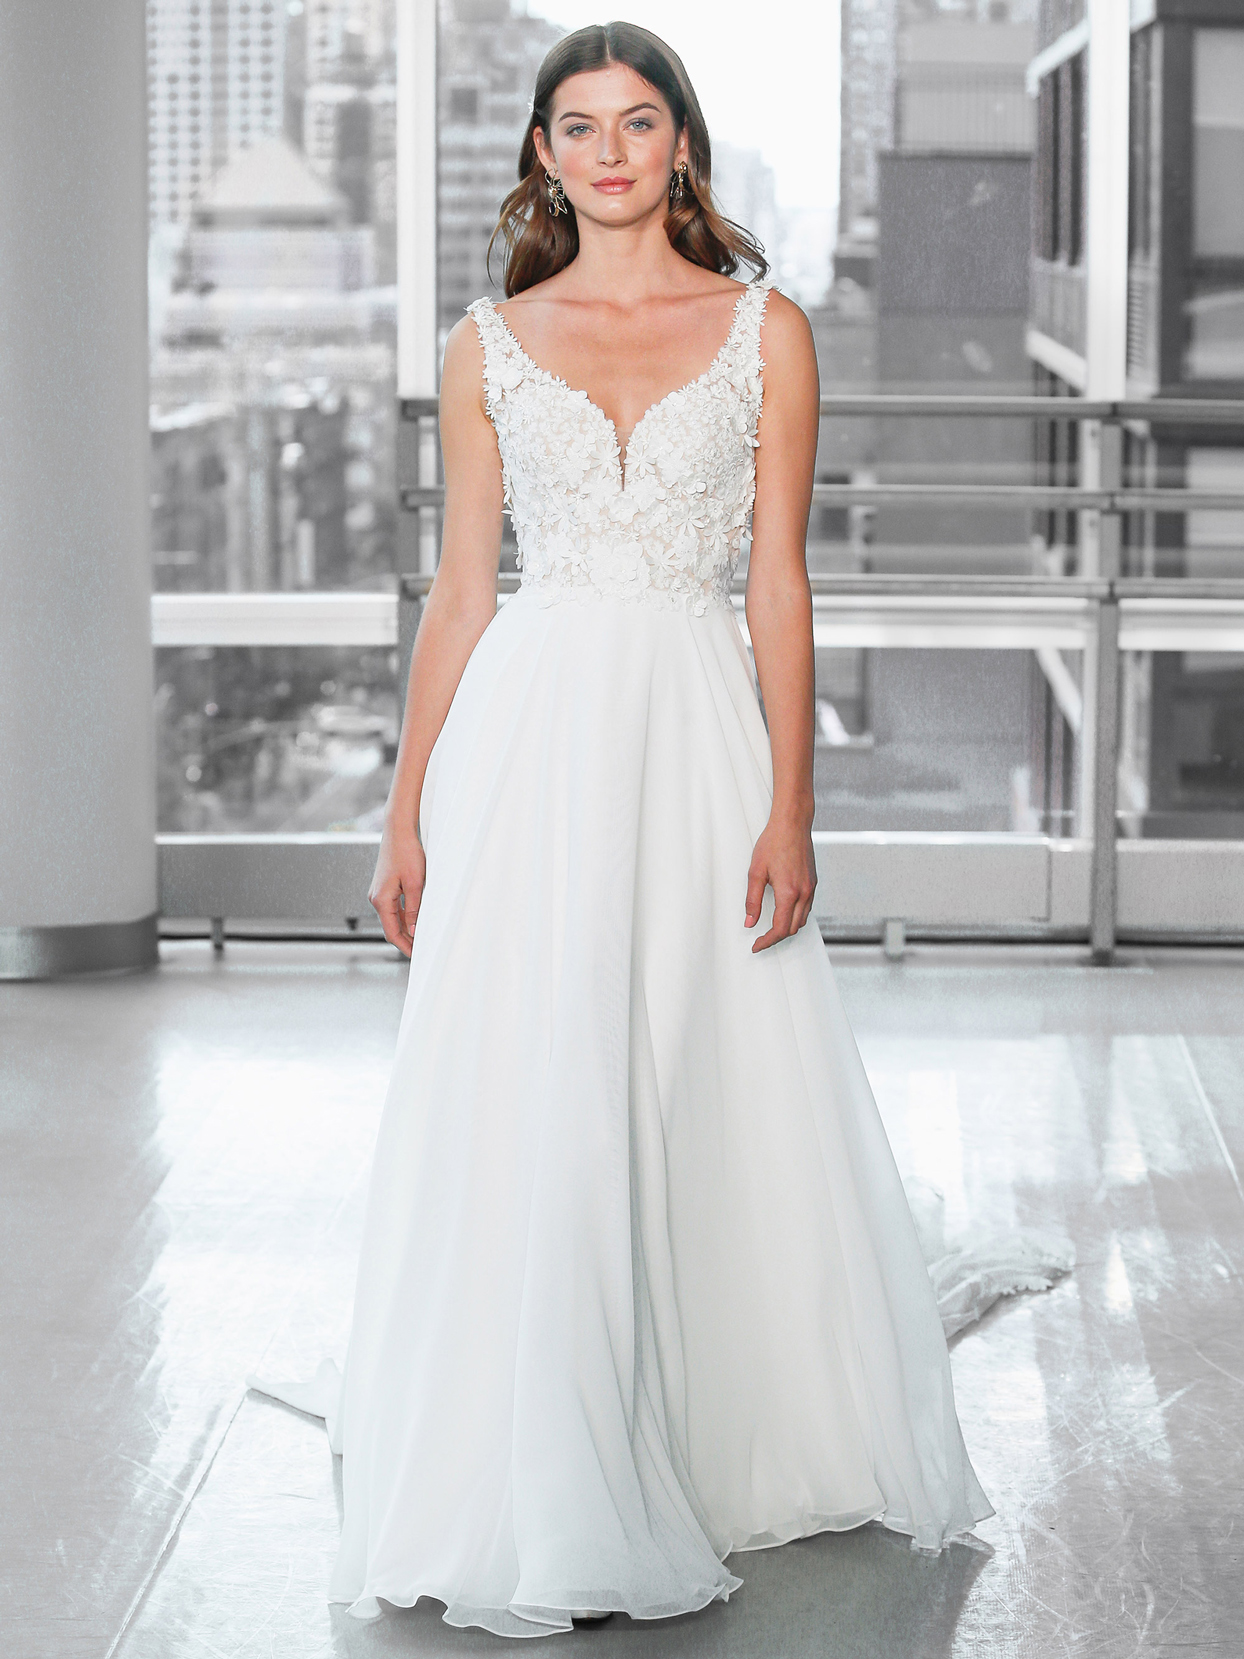 Justin Alexander Signature chiffon a-line 3d floral applique wedding dress fall 2020